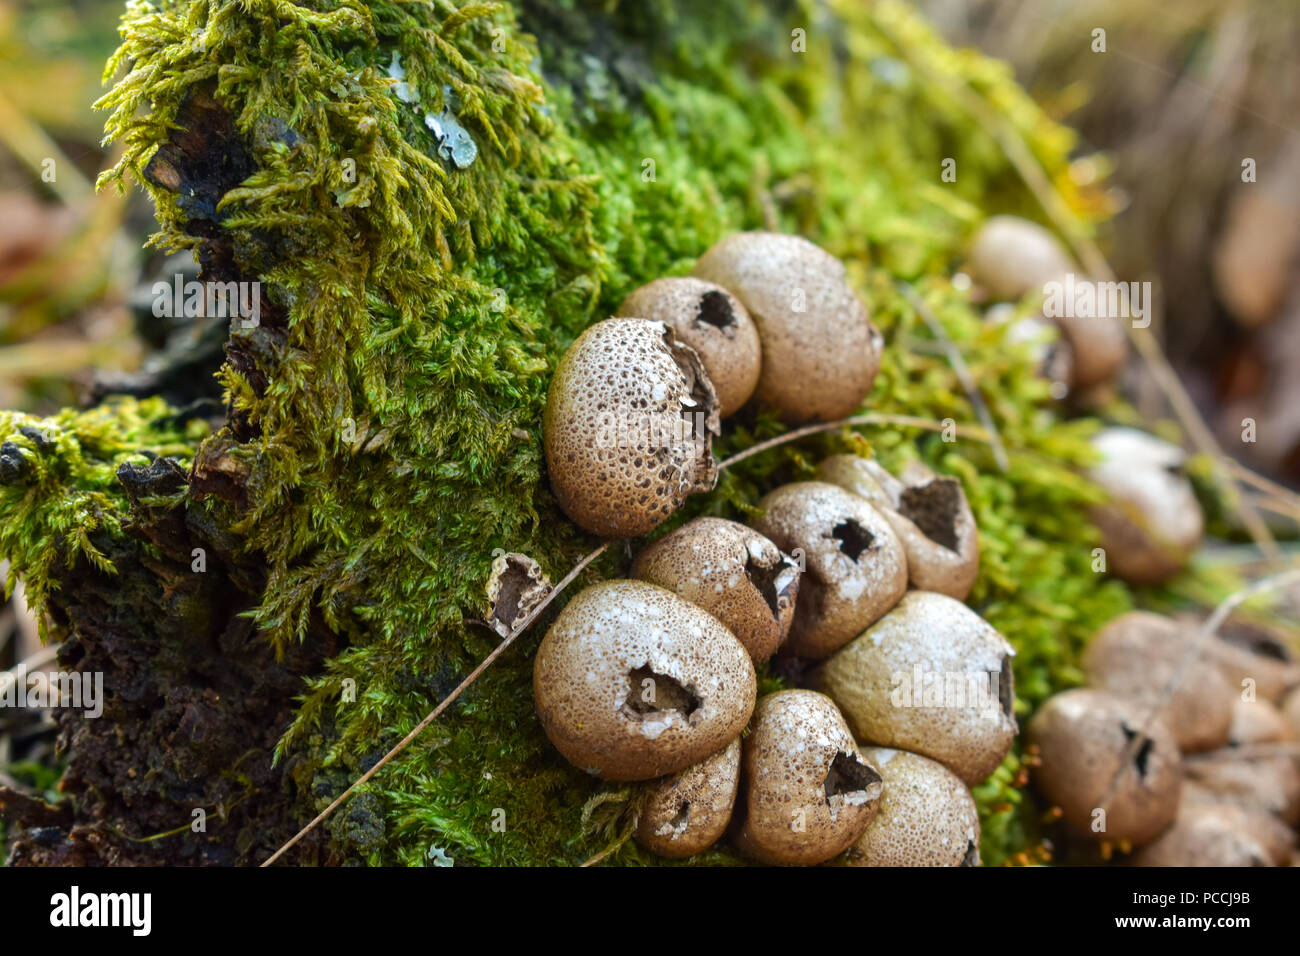 Lycoperdon perlatum, popularly known as the common puffball, warted puffball,  is a species of puffball fungus in the family Agaricaceae. - Stock Image